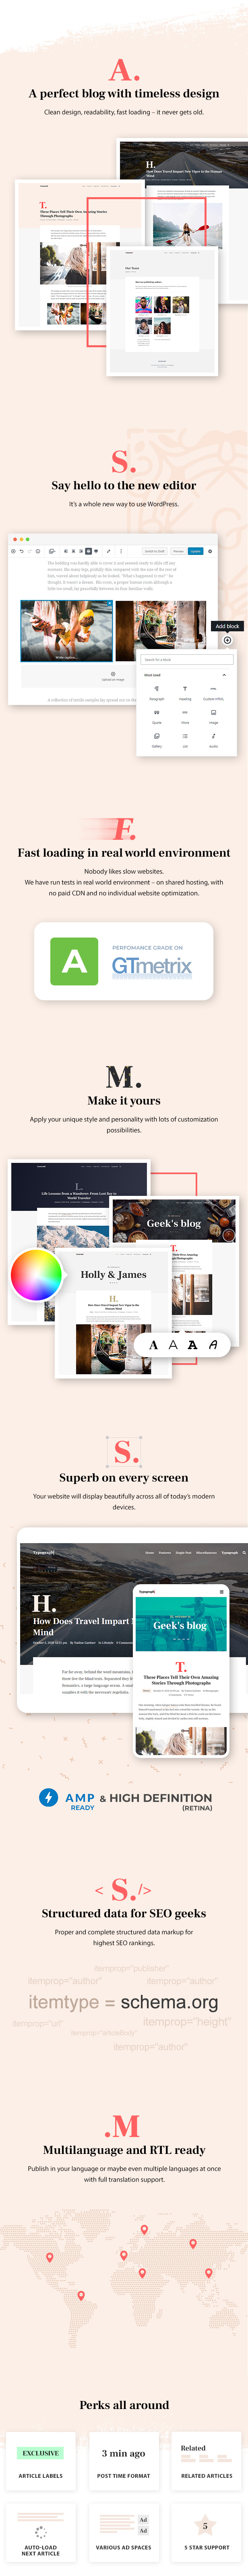 Typography - Content focused on the Gutenberg theme for WordPress Blog - 1